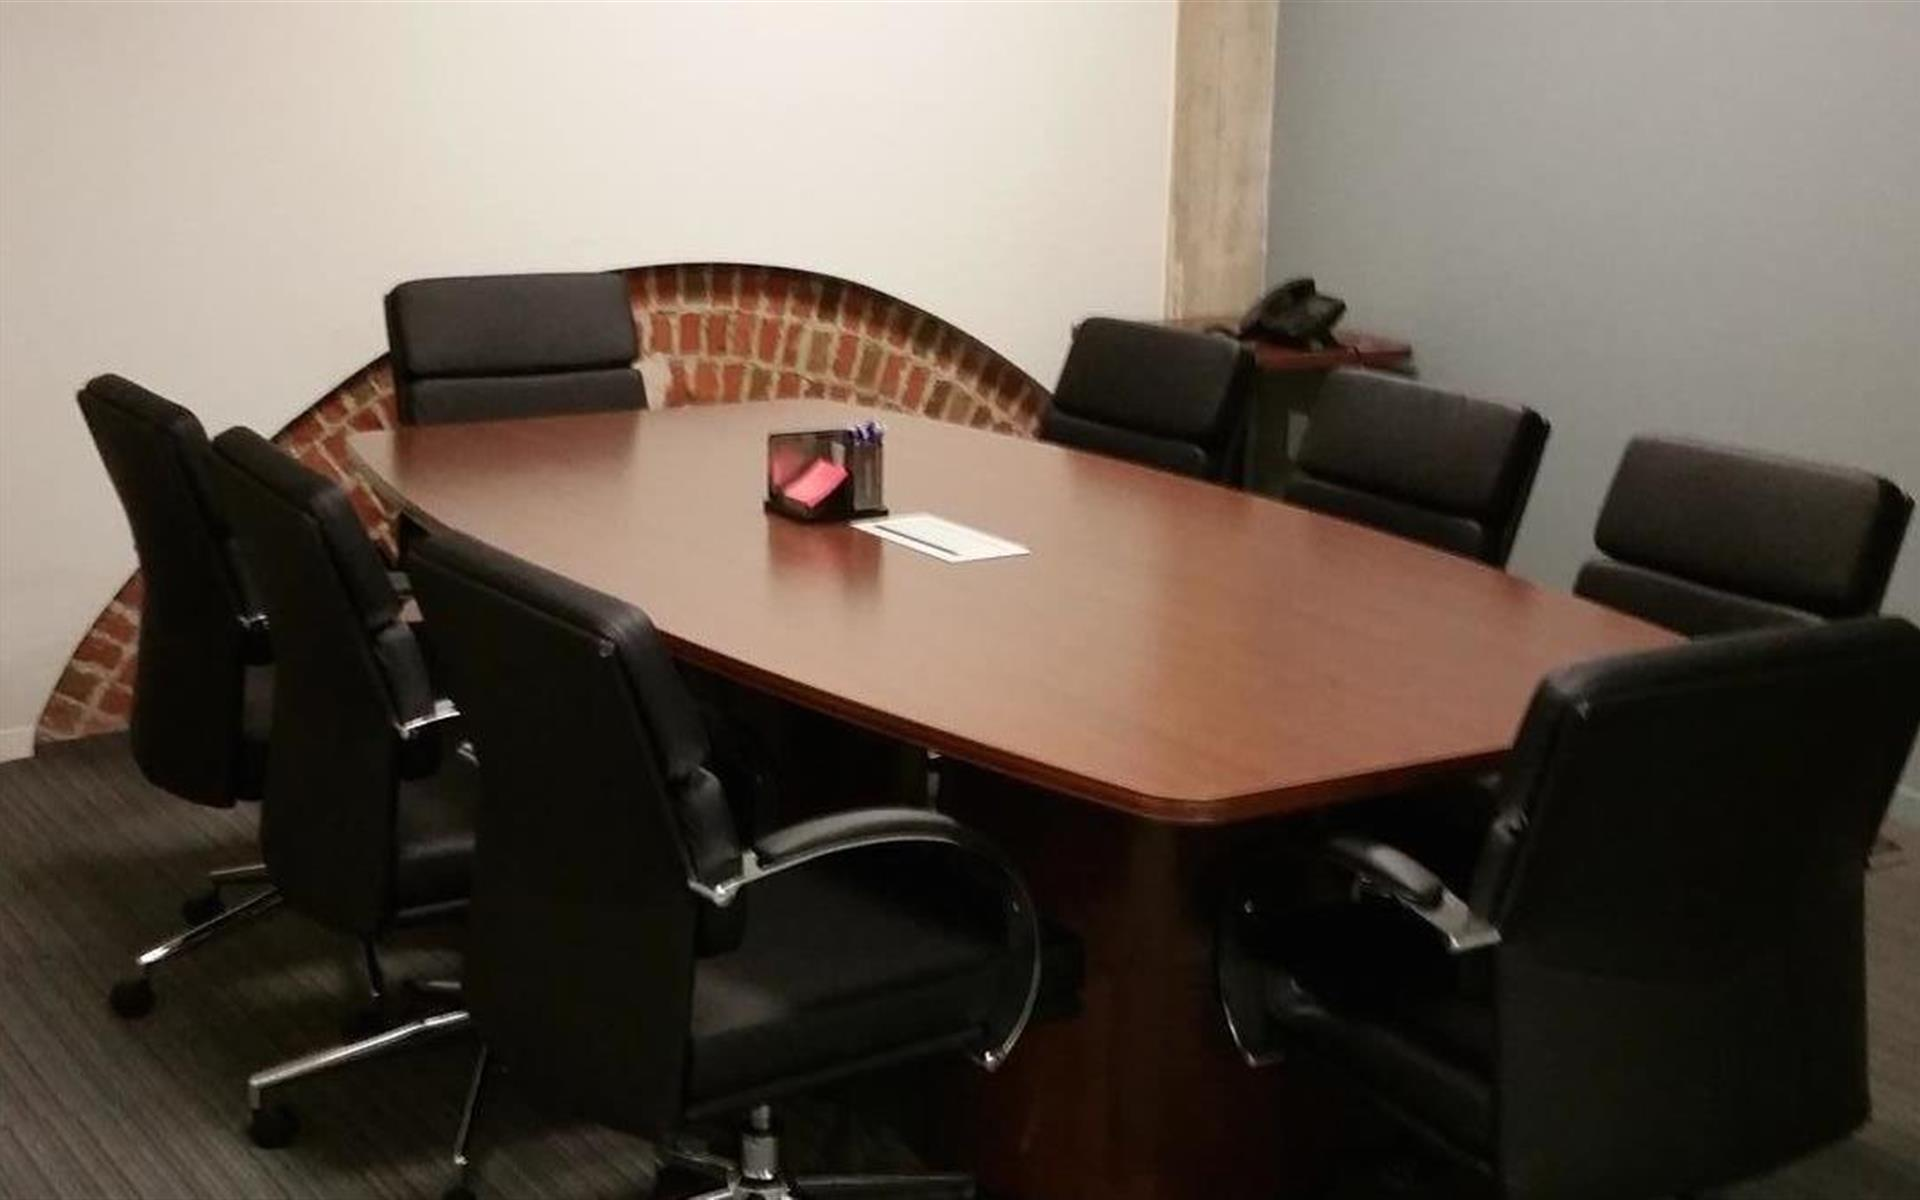 PacMutual Bldg. - First Legal Deposition - Medium Conference Room 1